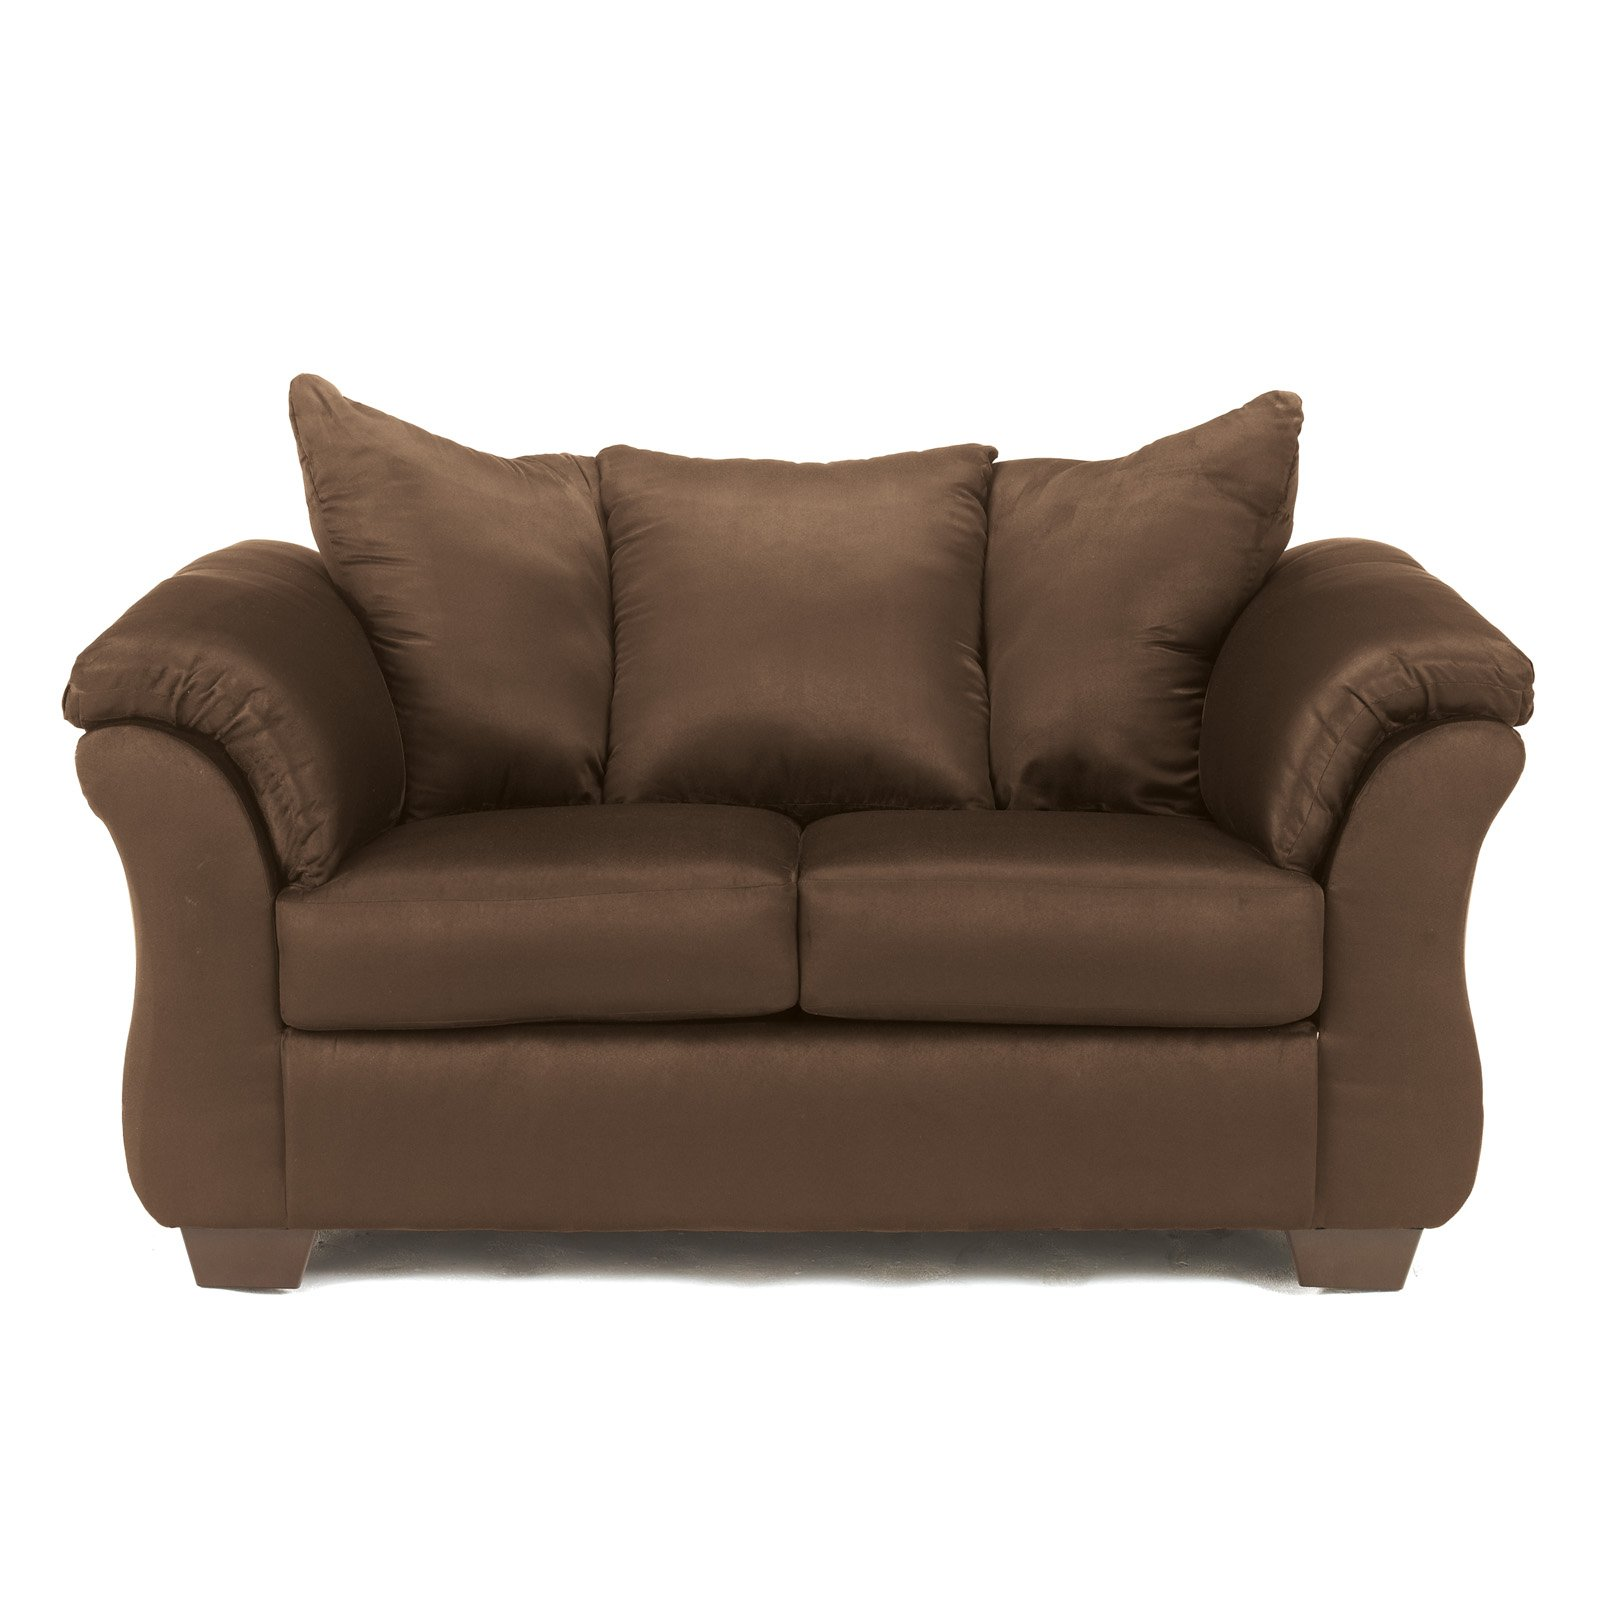 Signature Design by Ashley Darcy Loveseat